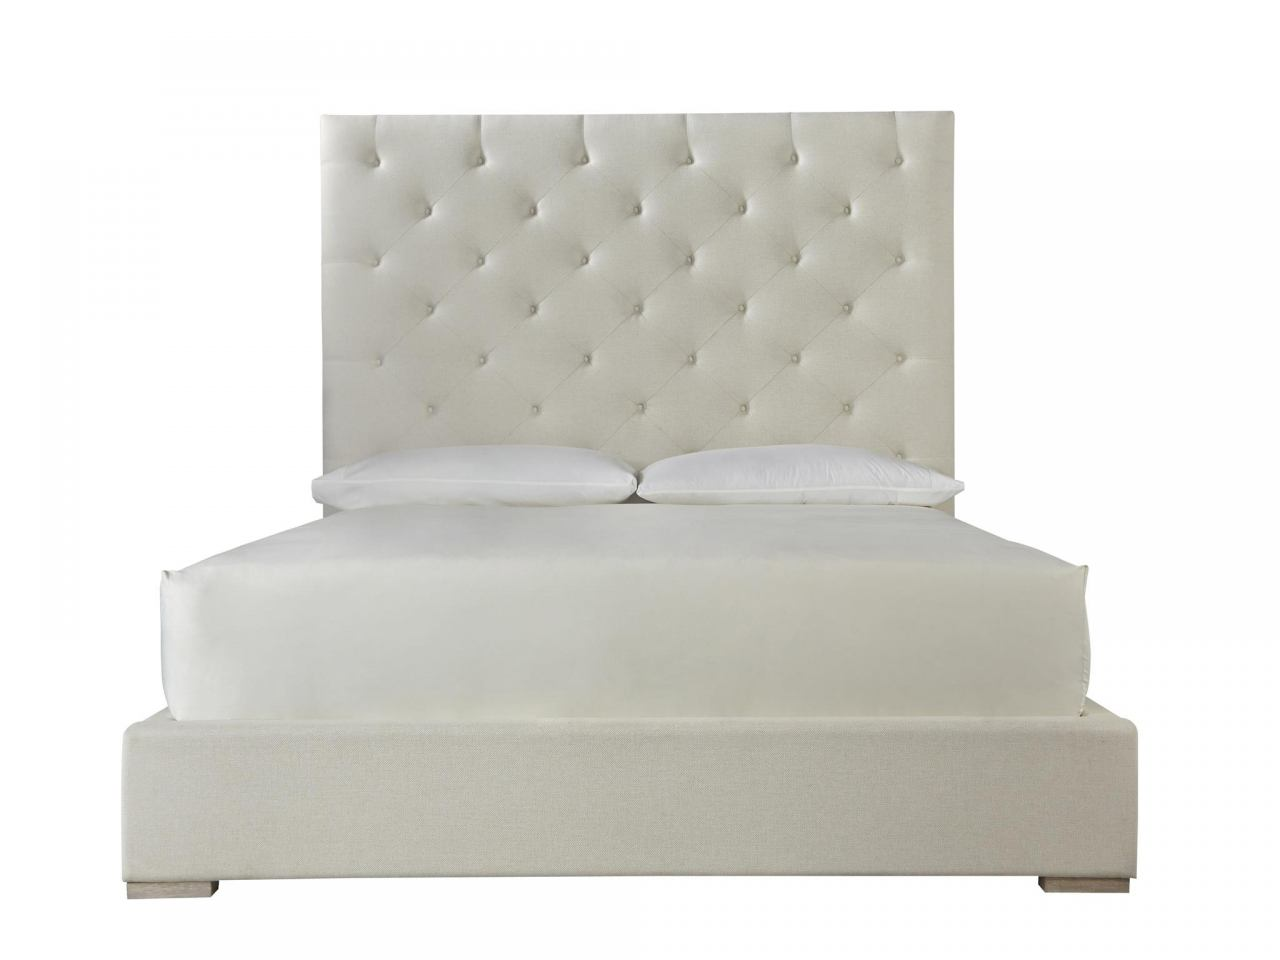 Universal Furniture Modern Brando King Bed 643220B CODE:UNIV20 for 20% Off